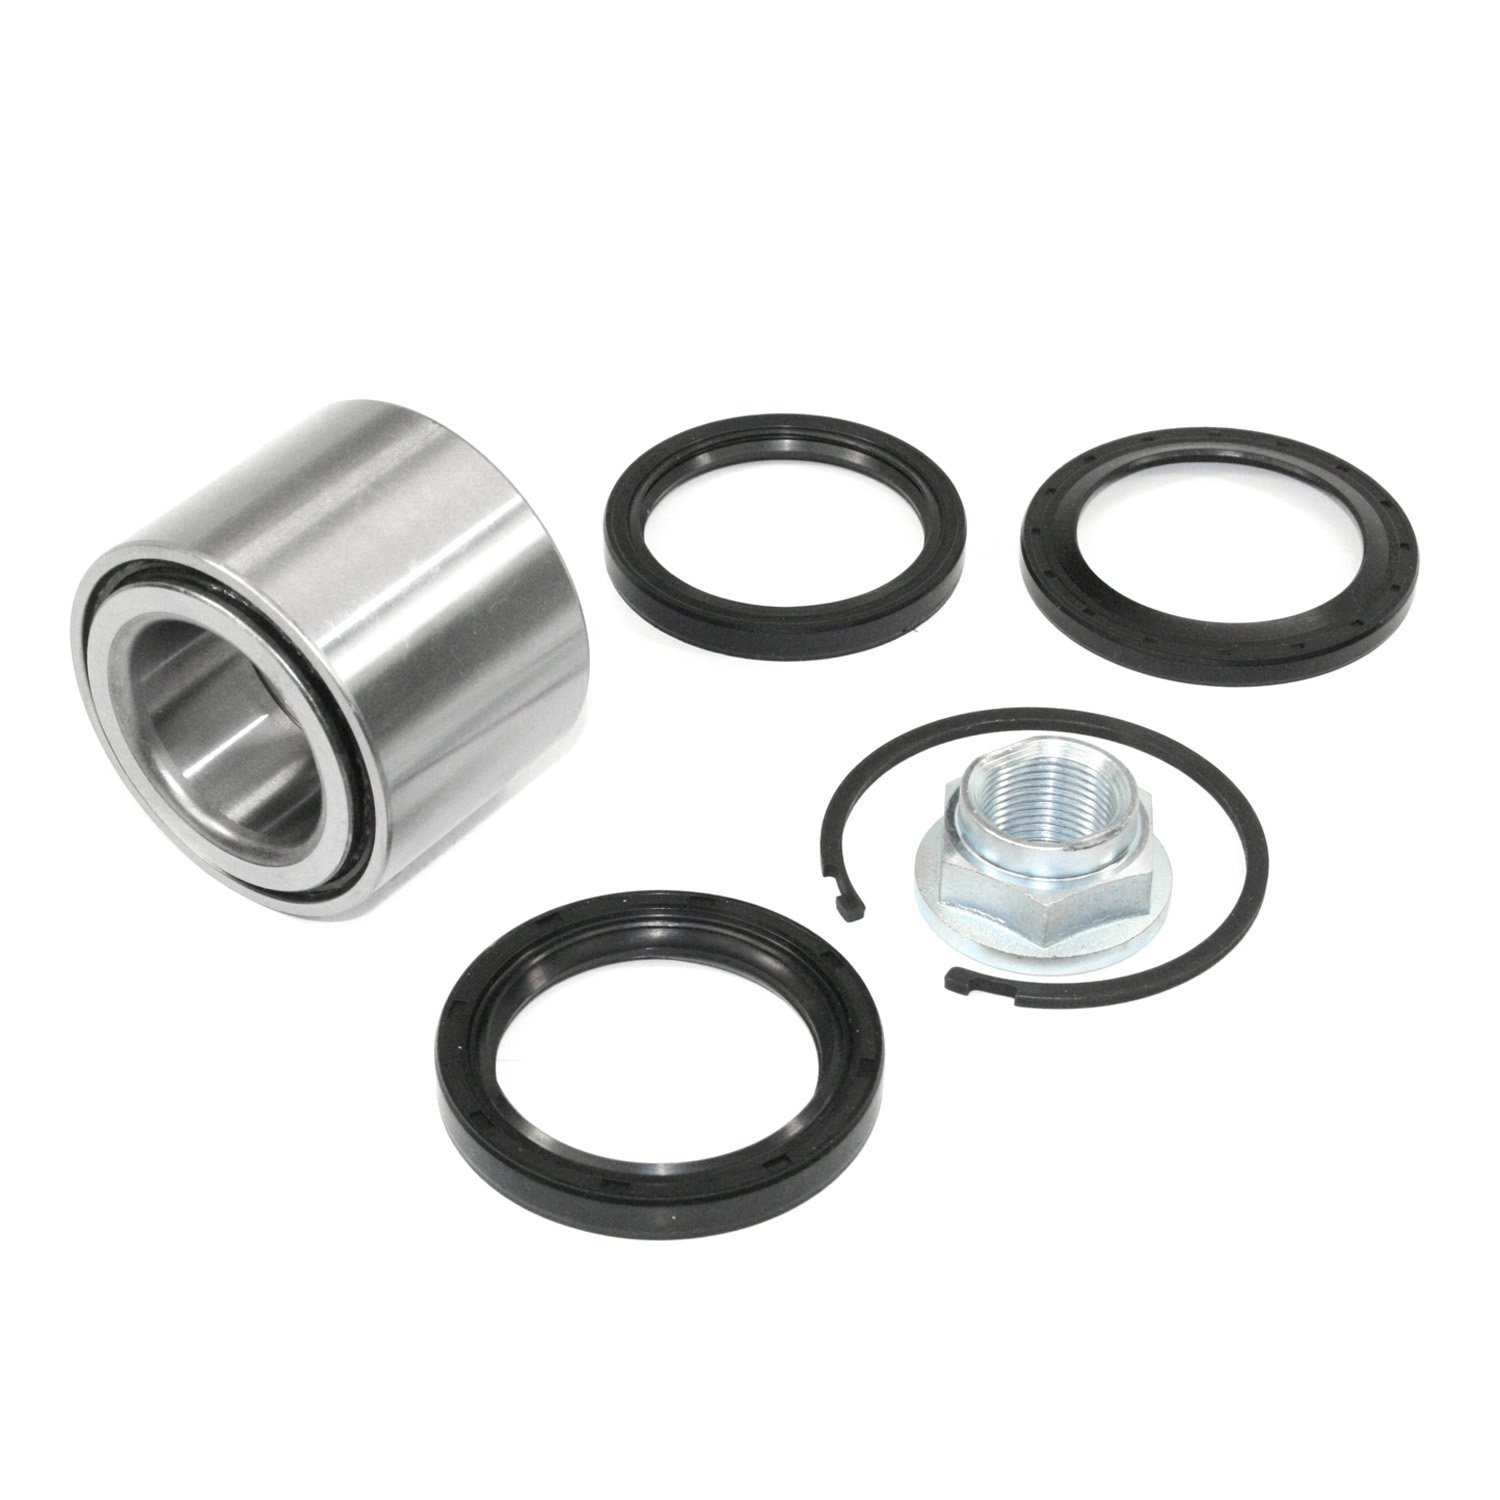 DuraGo 29513248SK Wheel Bearing Kit (Rear) by DuraGo